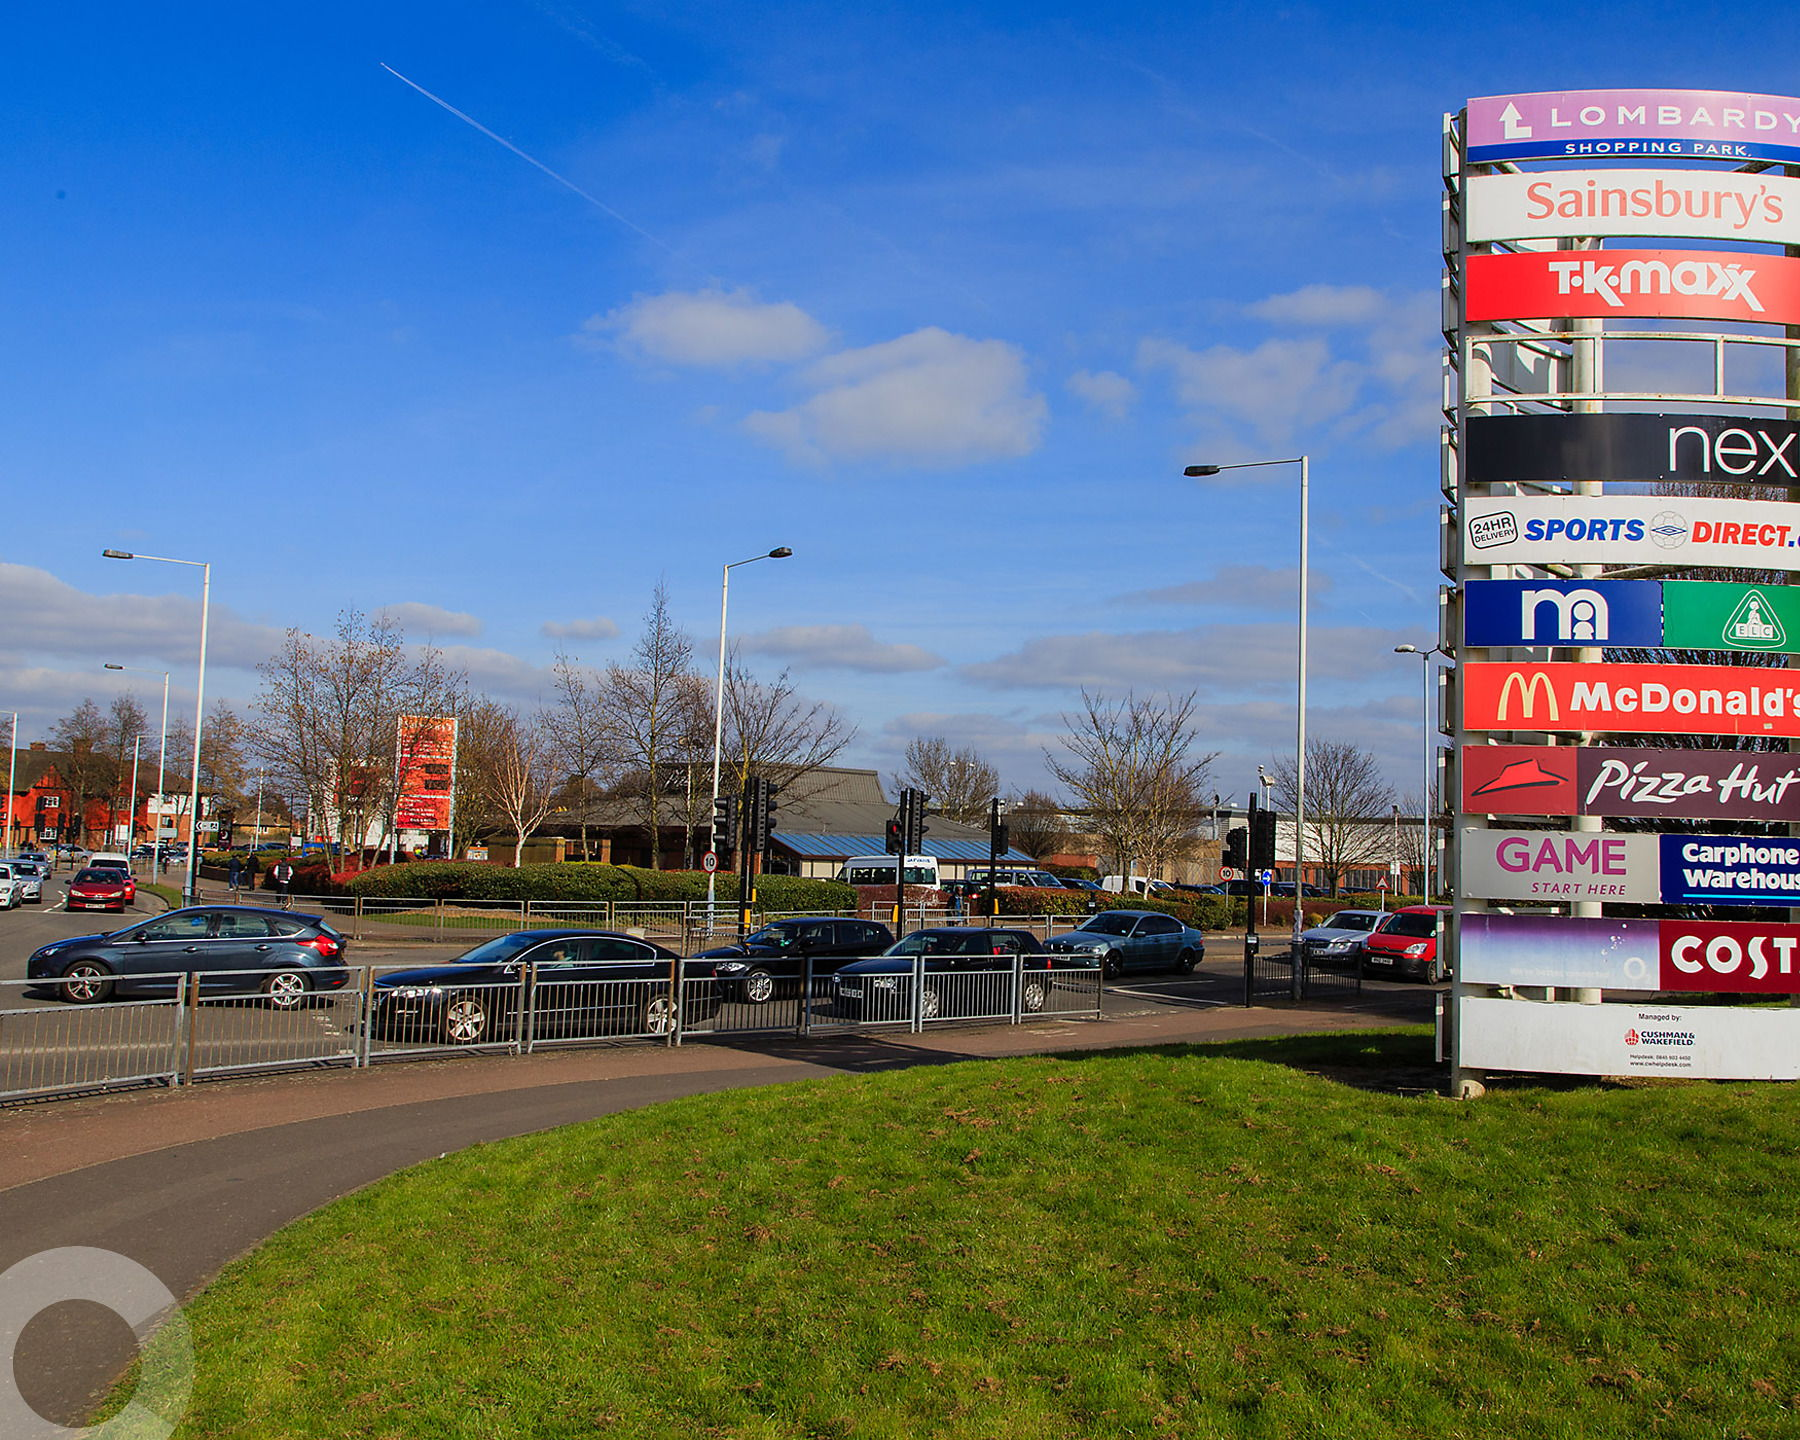 Lombardy Shopping Park Hayes Completely Property